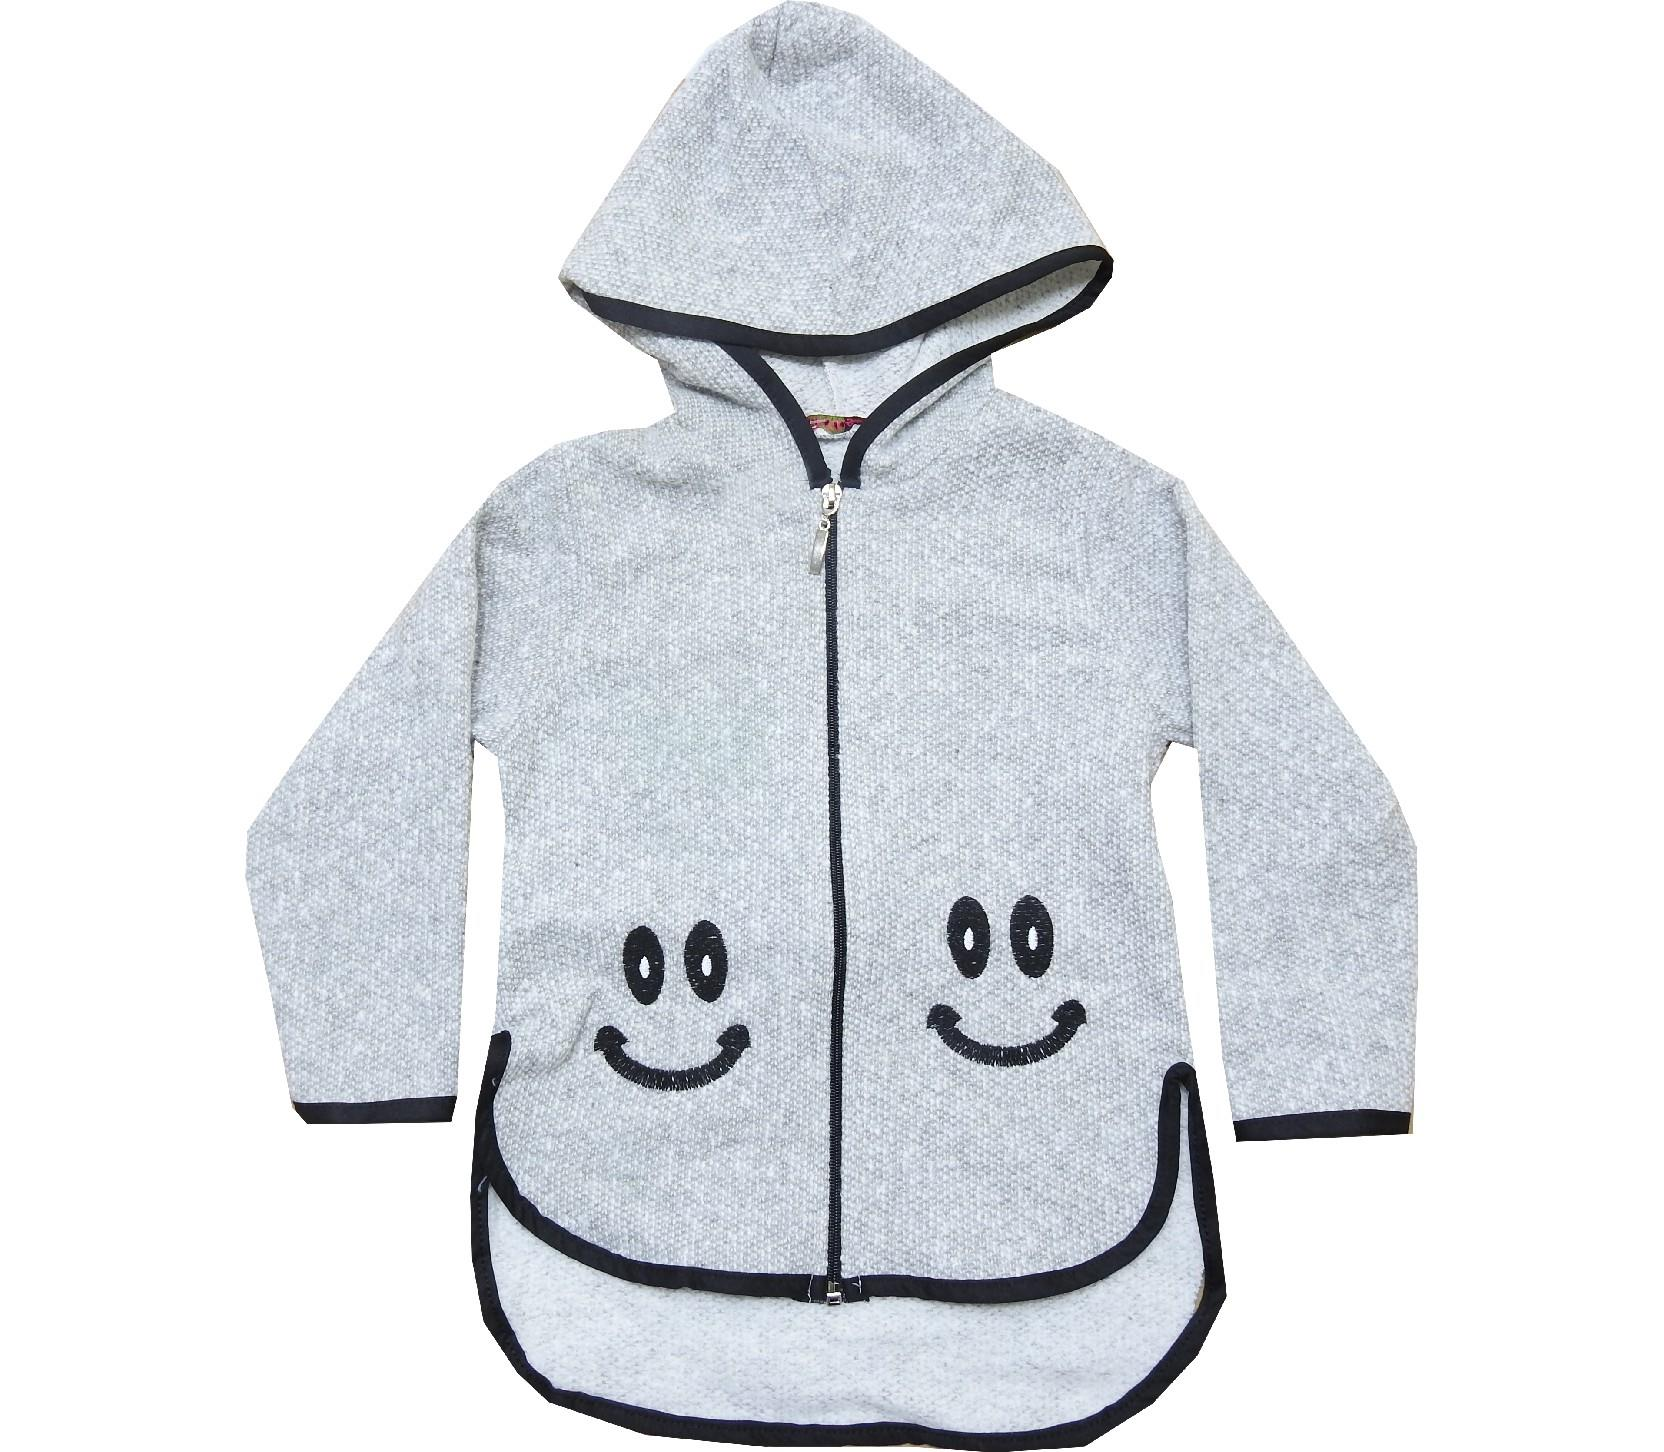 H.AK 116 Wholesale knitted smile printed hooded cardigan for children (5-6-7-8-9 age)